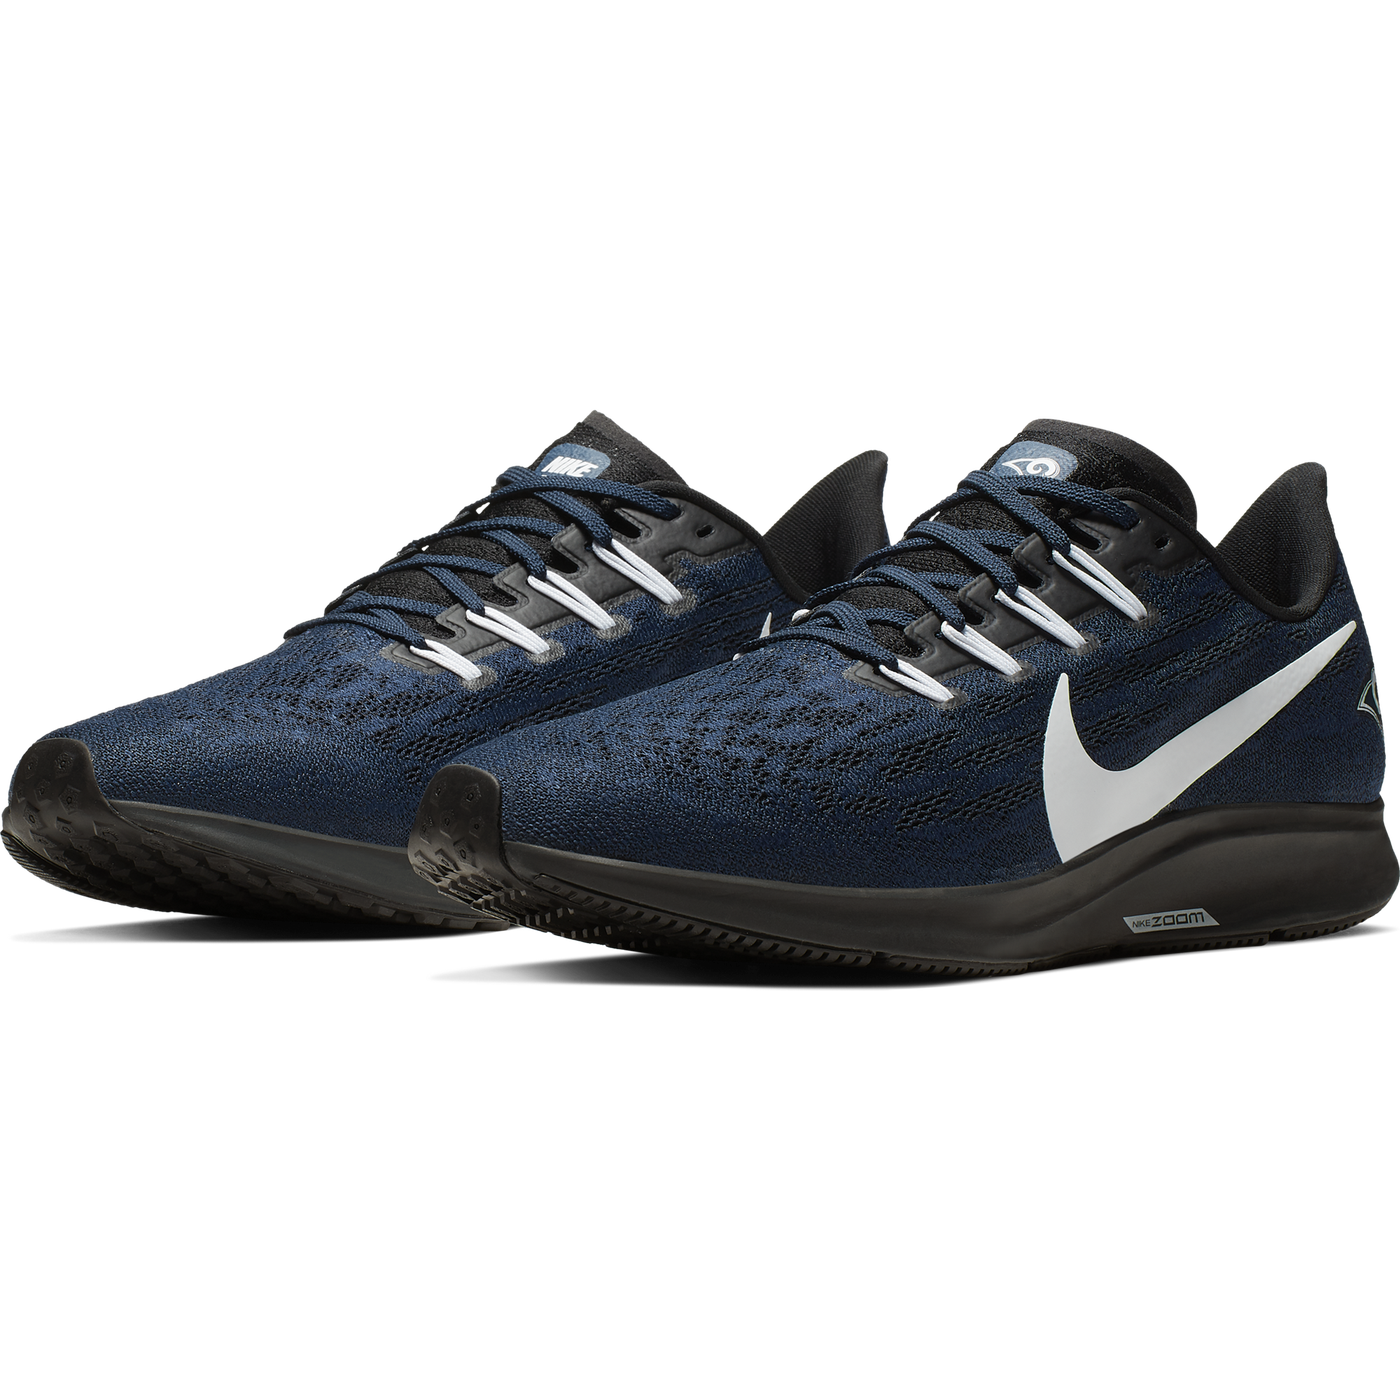 on sale 54162 4ad0f Nike drops the new Air Zoom Pegasus 36 Rams shoe! - Turf ...